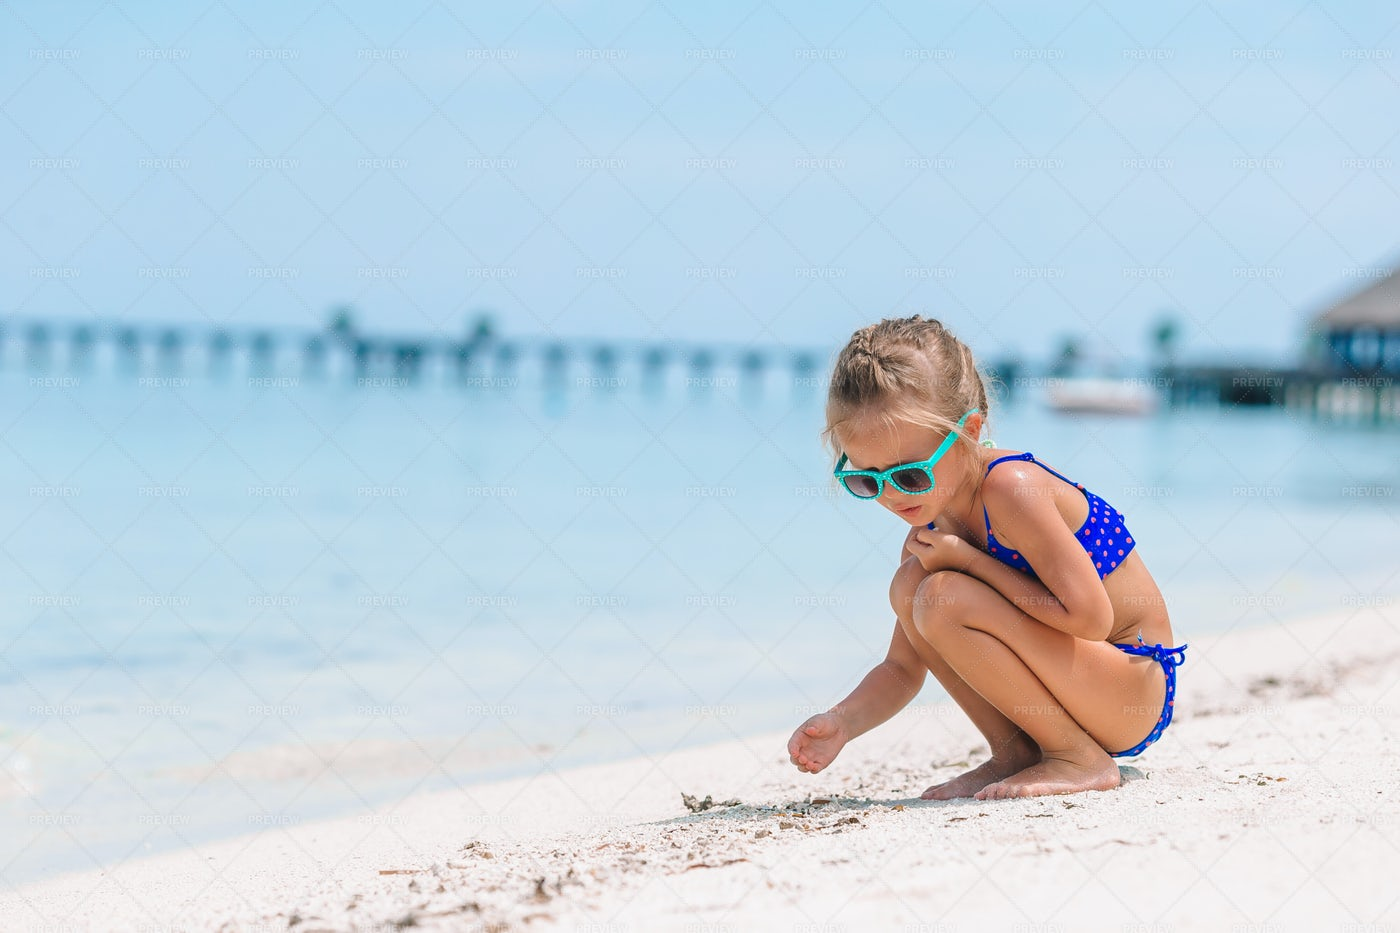 Girl Drawing In The Sand: Stock Photos